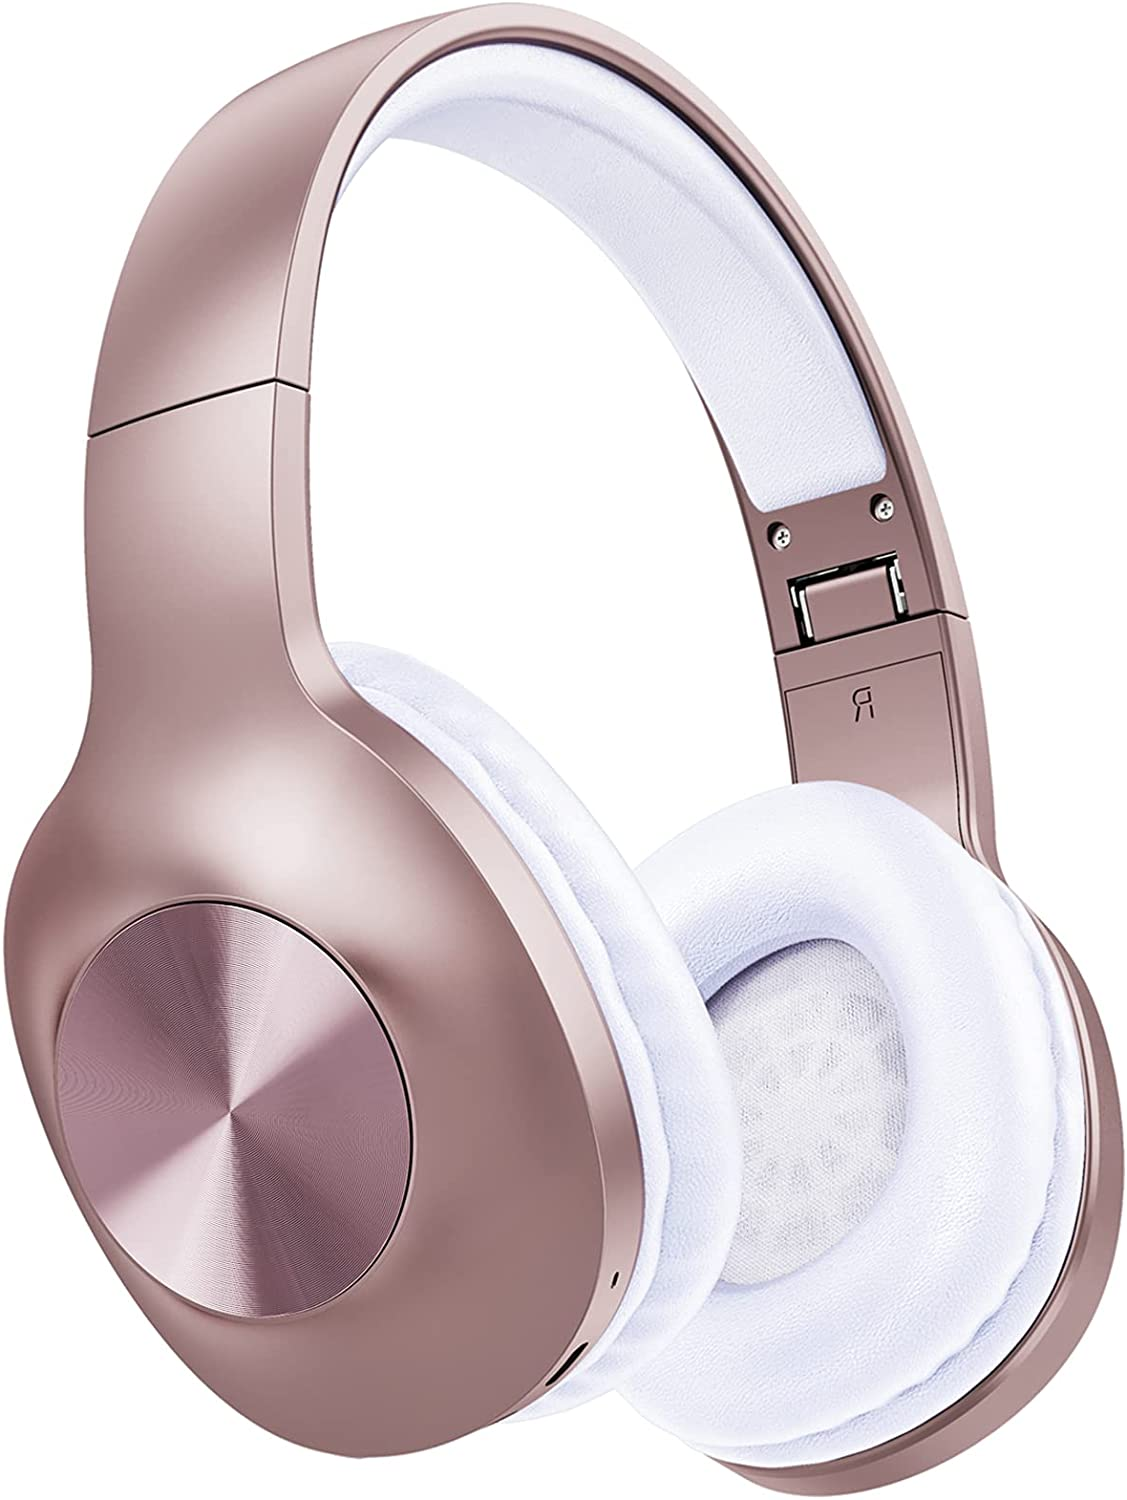 Bluetooth Headphones Foldable Wireless, 100 Hours Playtime Over Ear Headphones with Deep Bass, Hi-Fi Sound Wired/Wireless Headset Soft Ear Cups Built-in Mic for Home Office Travel Rosegold